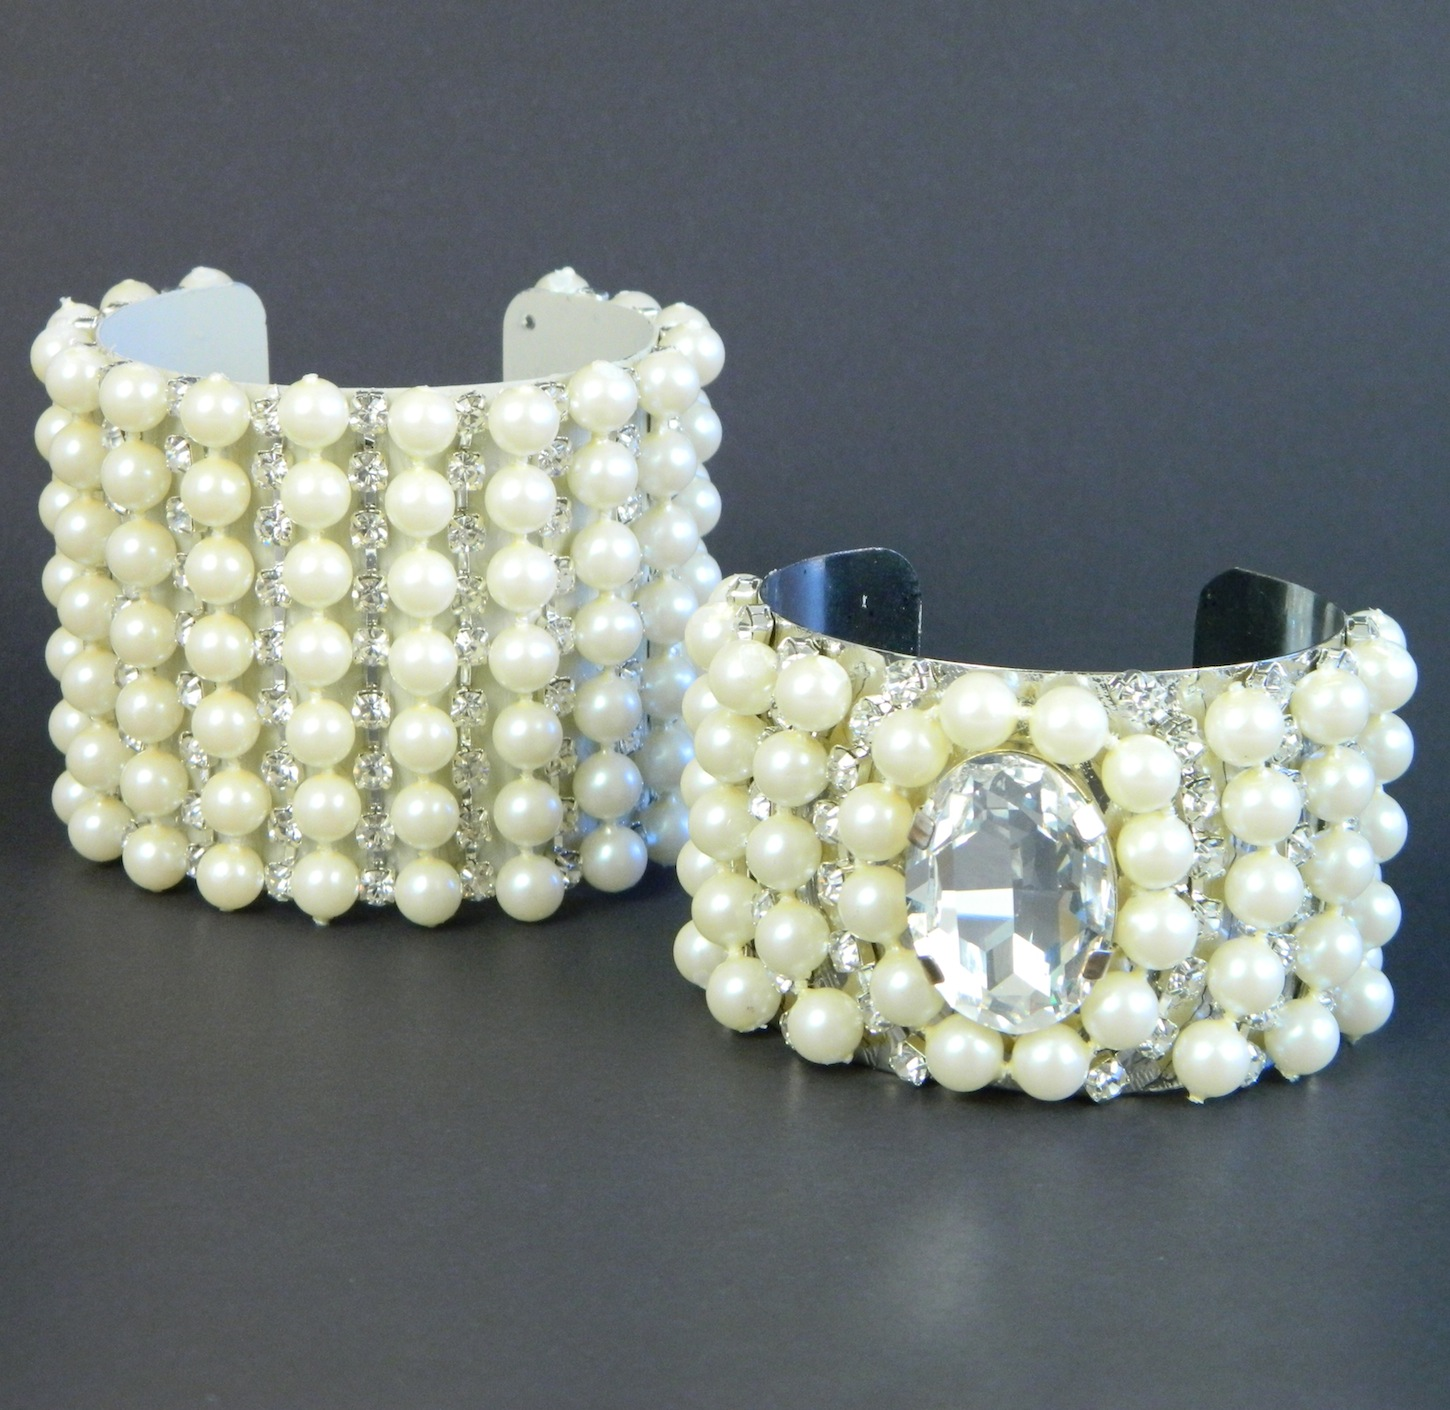 Coco Chanel Inspired Cuffs